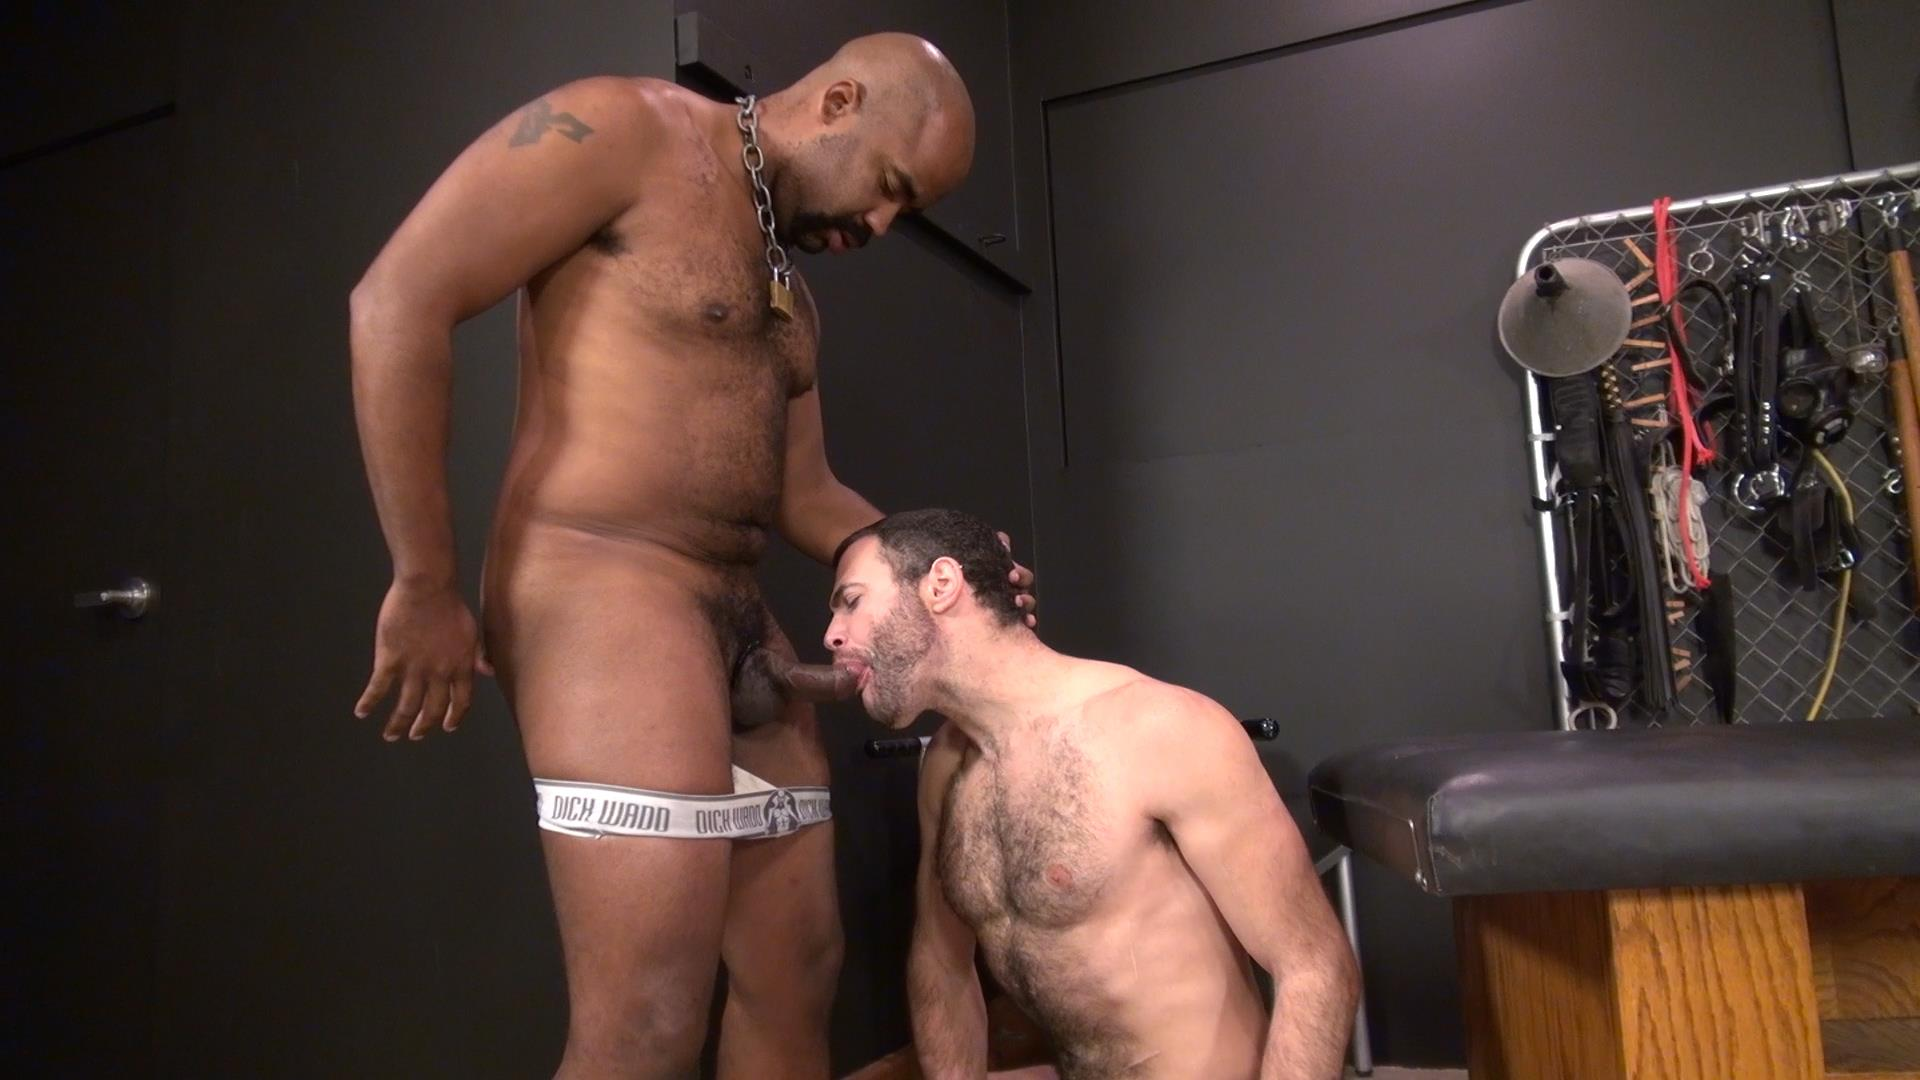 Raw-and-Rough-Jake-Wetmore-and-Dusty-Williams-and-Kid-Satyr-Bareback-Taking-Raw-Daddy-Loads-Cum-Amateur-Gay-Porn-06 Hairy Pup Taking Raw Interracial Daddy Loads Bareback